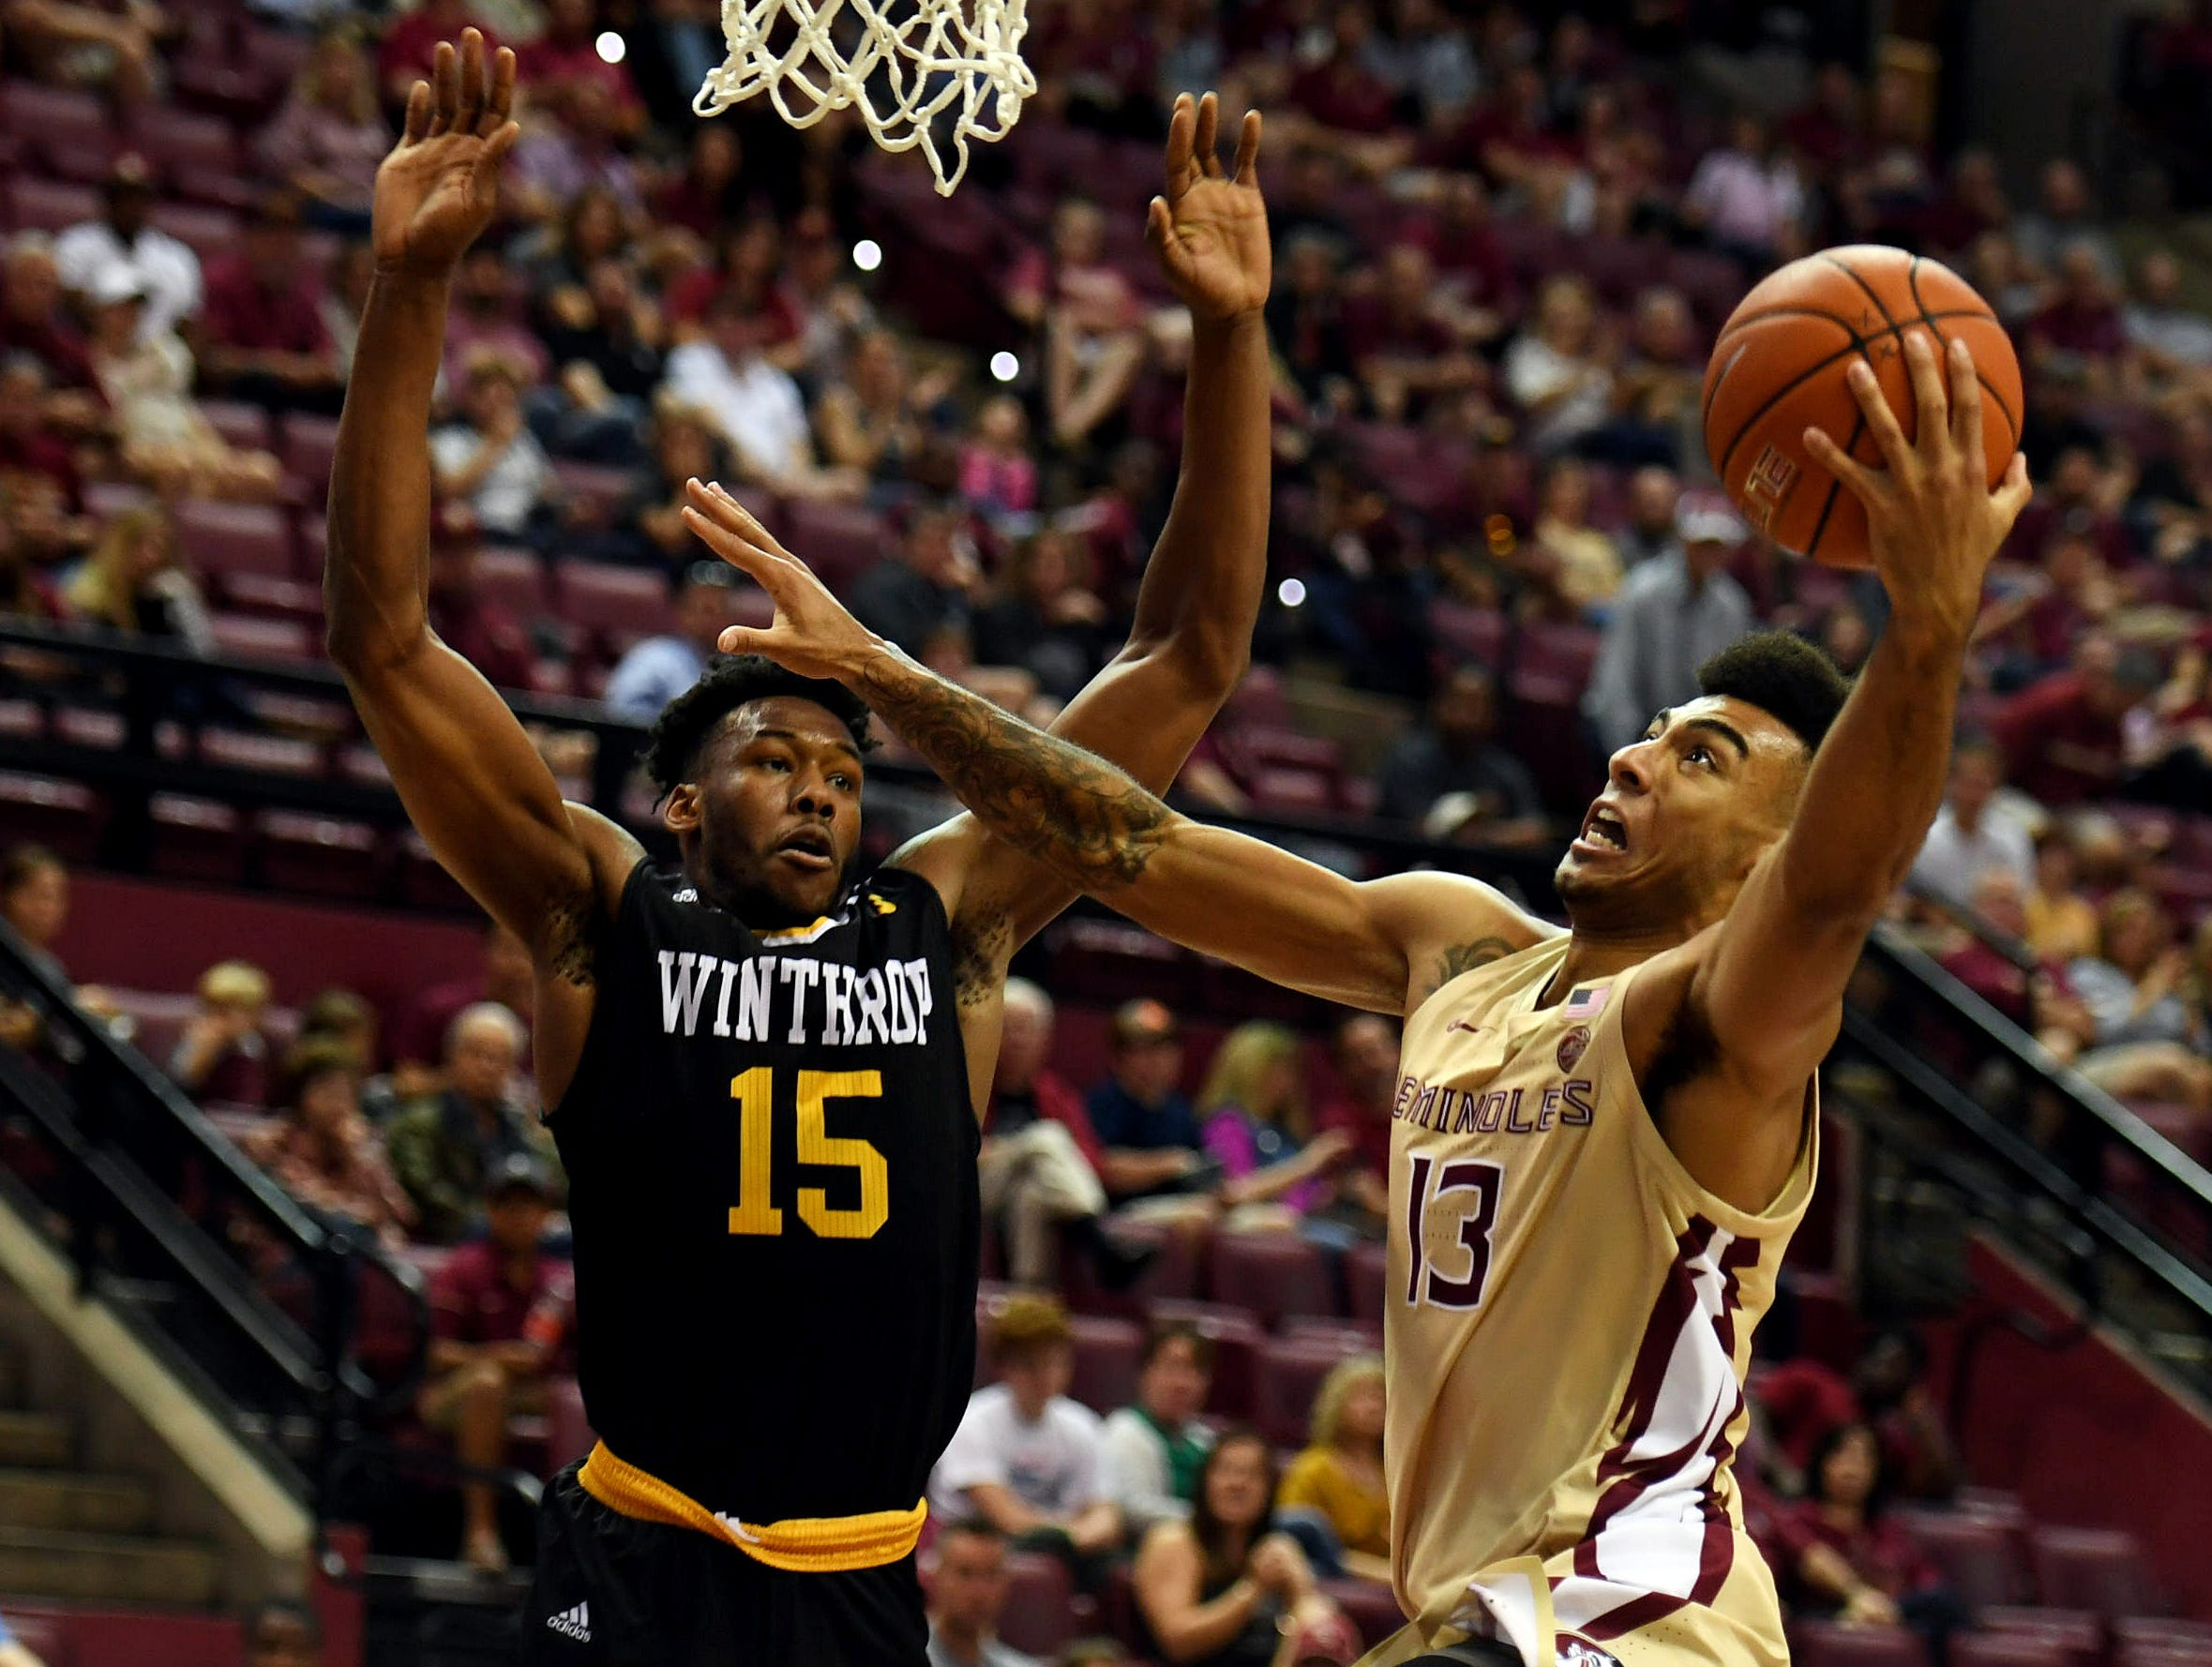 Jan 1, 2019; Tallahassee, FL, USA; Florida State Seminoles guard Anthony Polite (13) shoots the ball against Winthrop Eagles forward Jermaine Ukaegbu (15) during the game at Donald L. Tucker Center. Mandatory Credit: Melina Myers-USA TODAY Sports